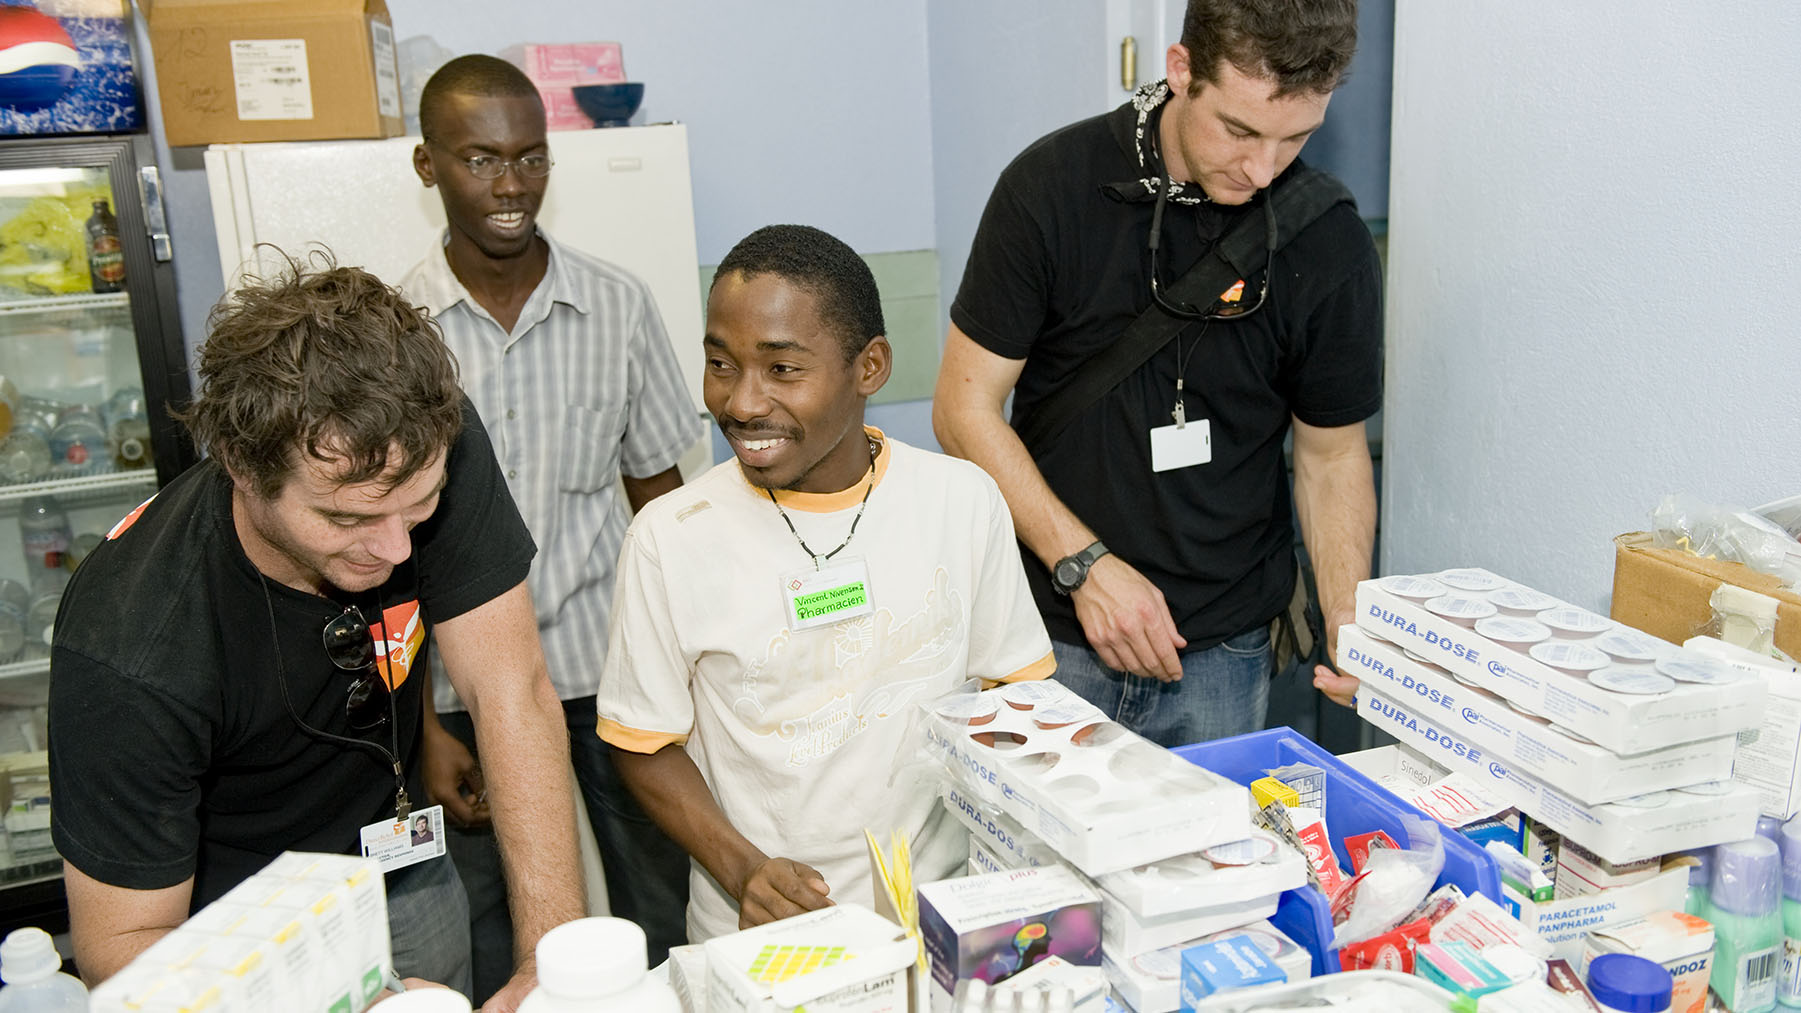 Direct Relief's Andrew MacCalla and Brett Williams at Sacre Couer, or CDTI Hospital, after the 2010 Haiti Earthquake. (Direct Relief)